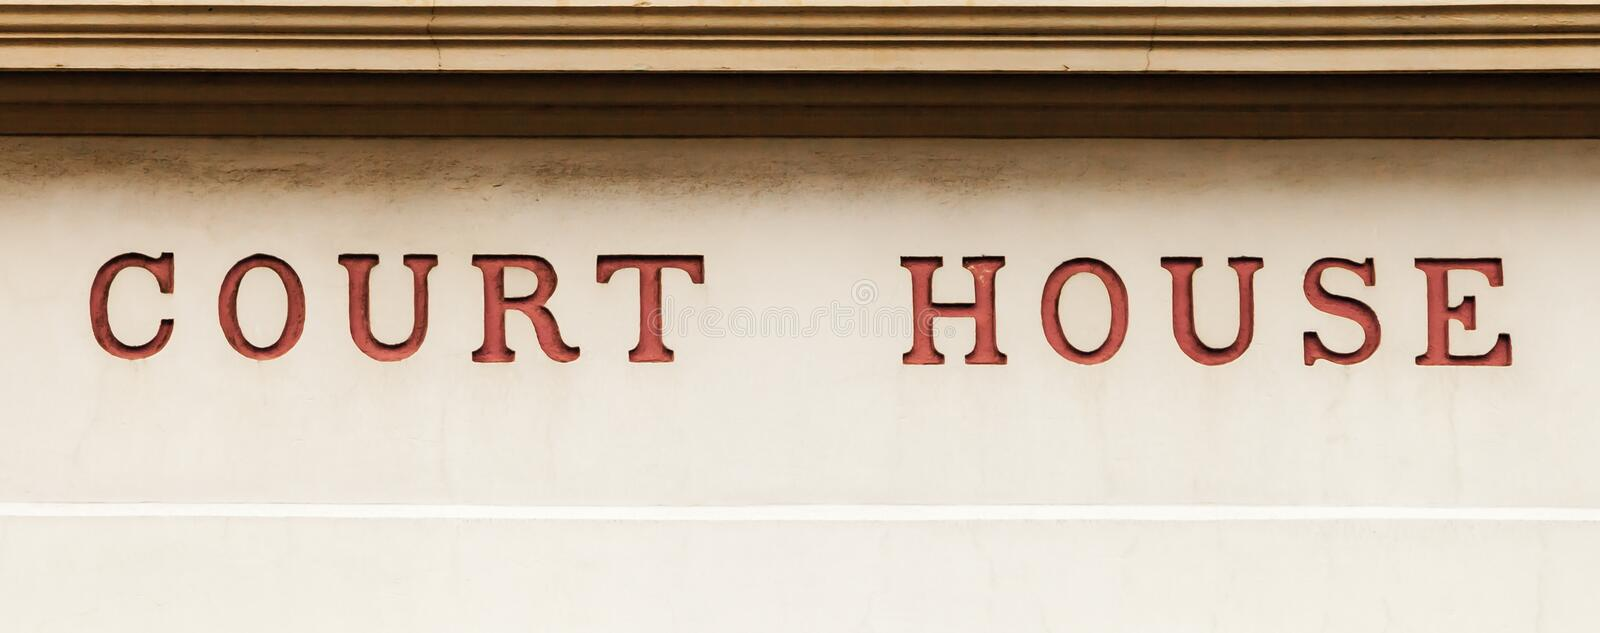 Old Red Letters on Public Historic Building Stating COURT HOUSE. Old red painted inset letters stating COURT HOUSE on a dirty grimy public historic heritage royalty free stock images